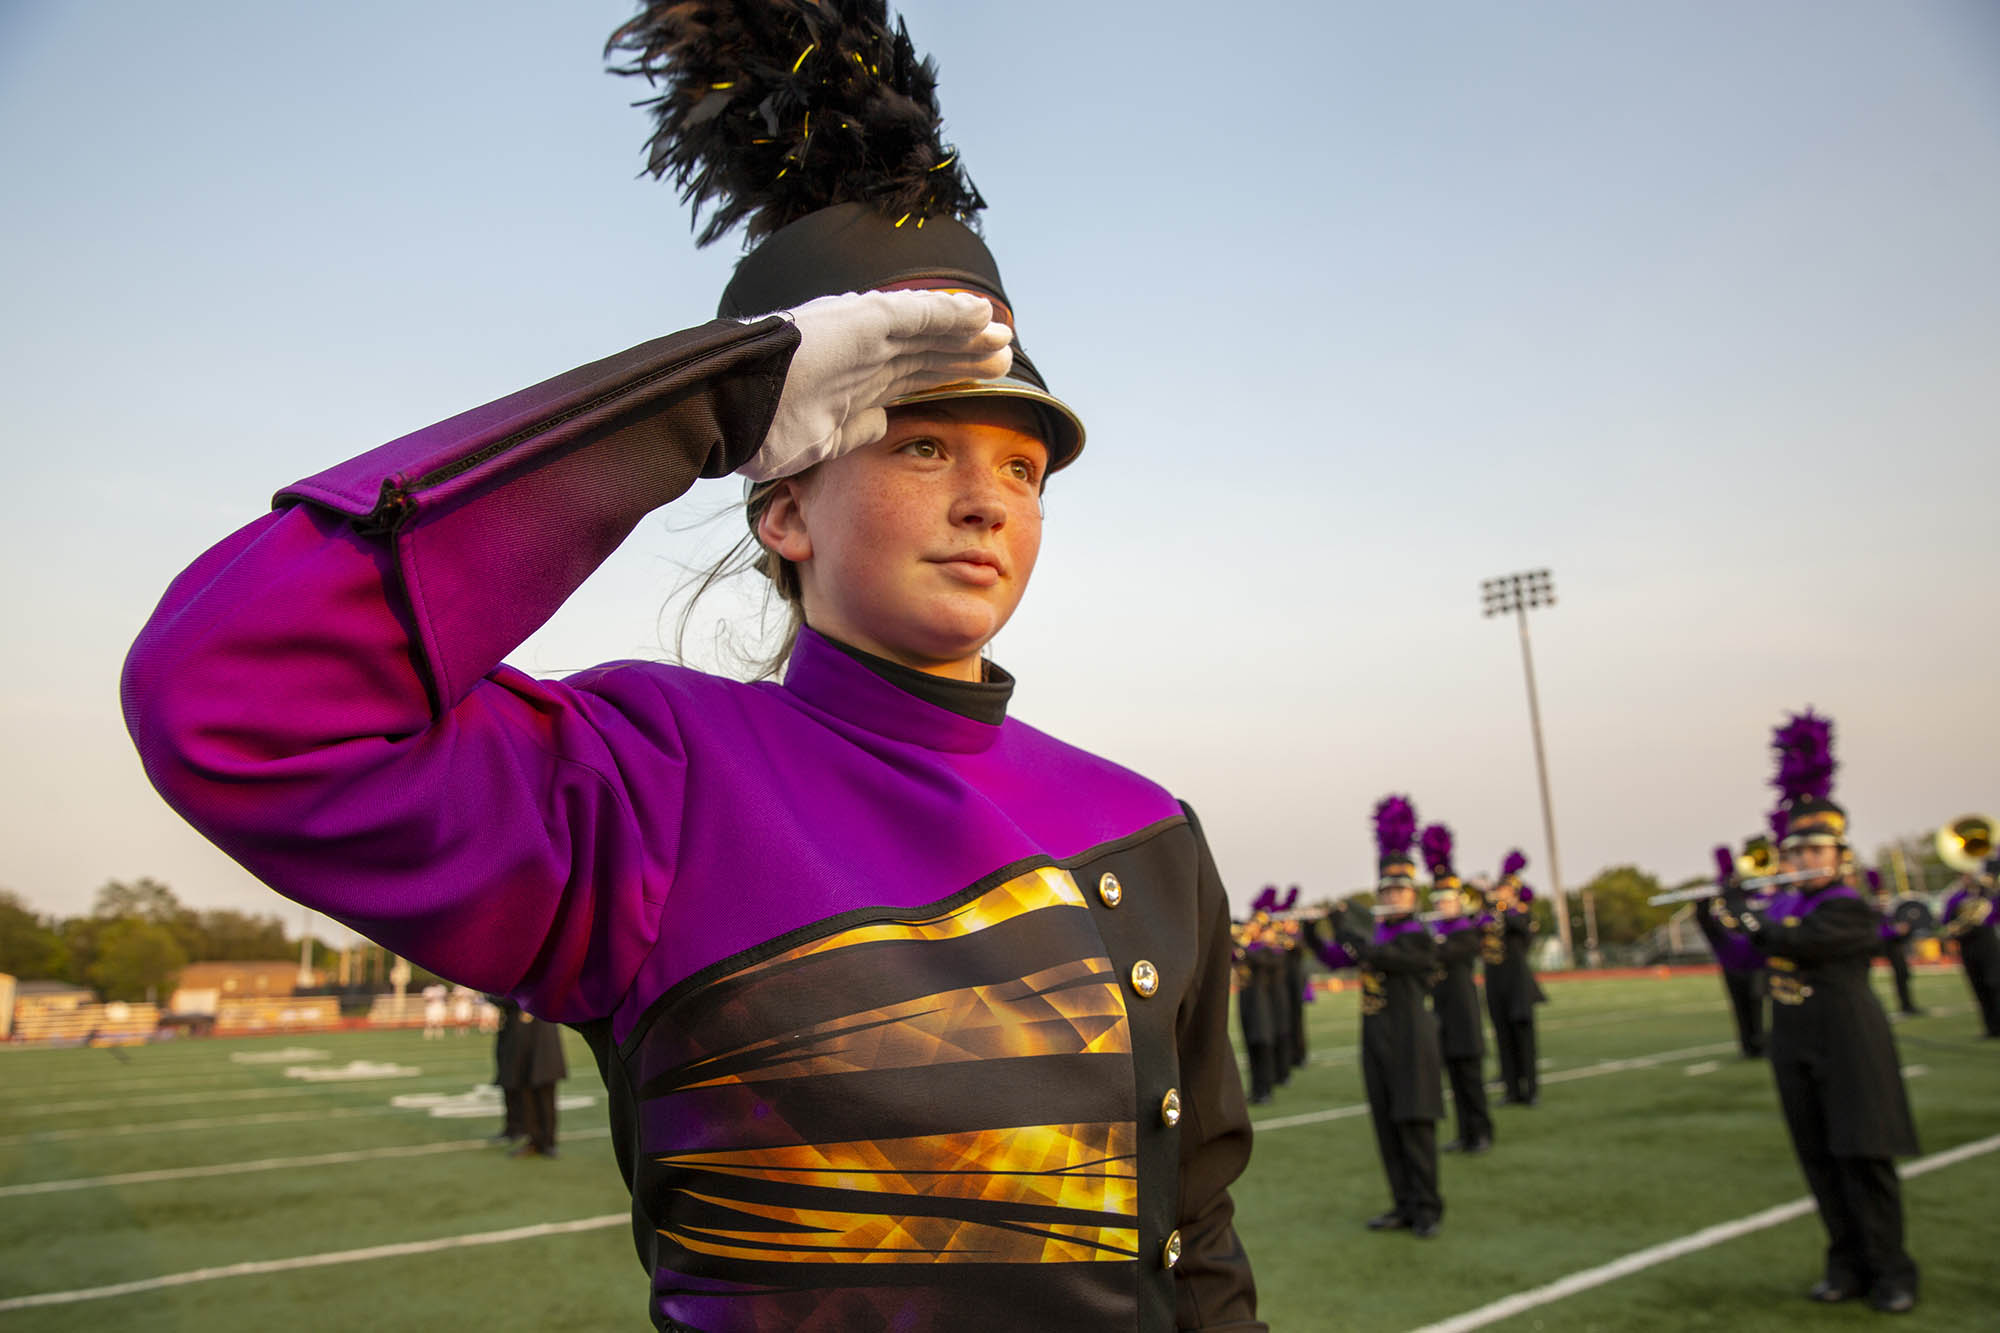 a student in a marching uniform salutes